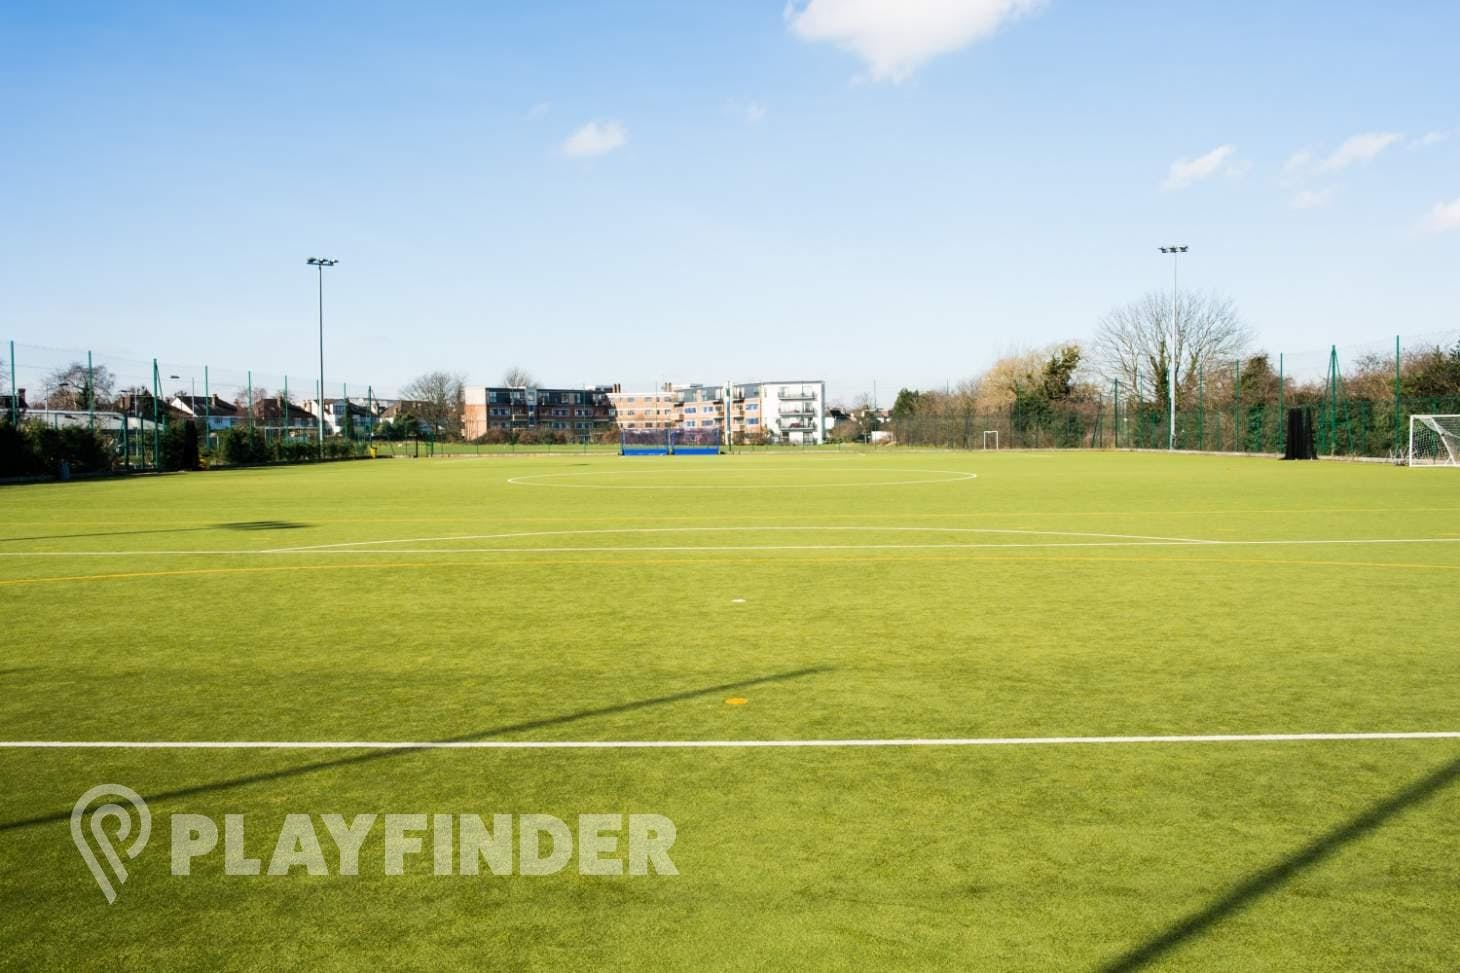 Boddington Gardens 5 a side | 3G Astroturf football pitch